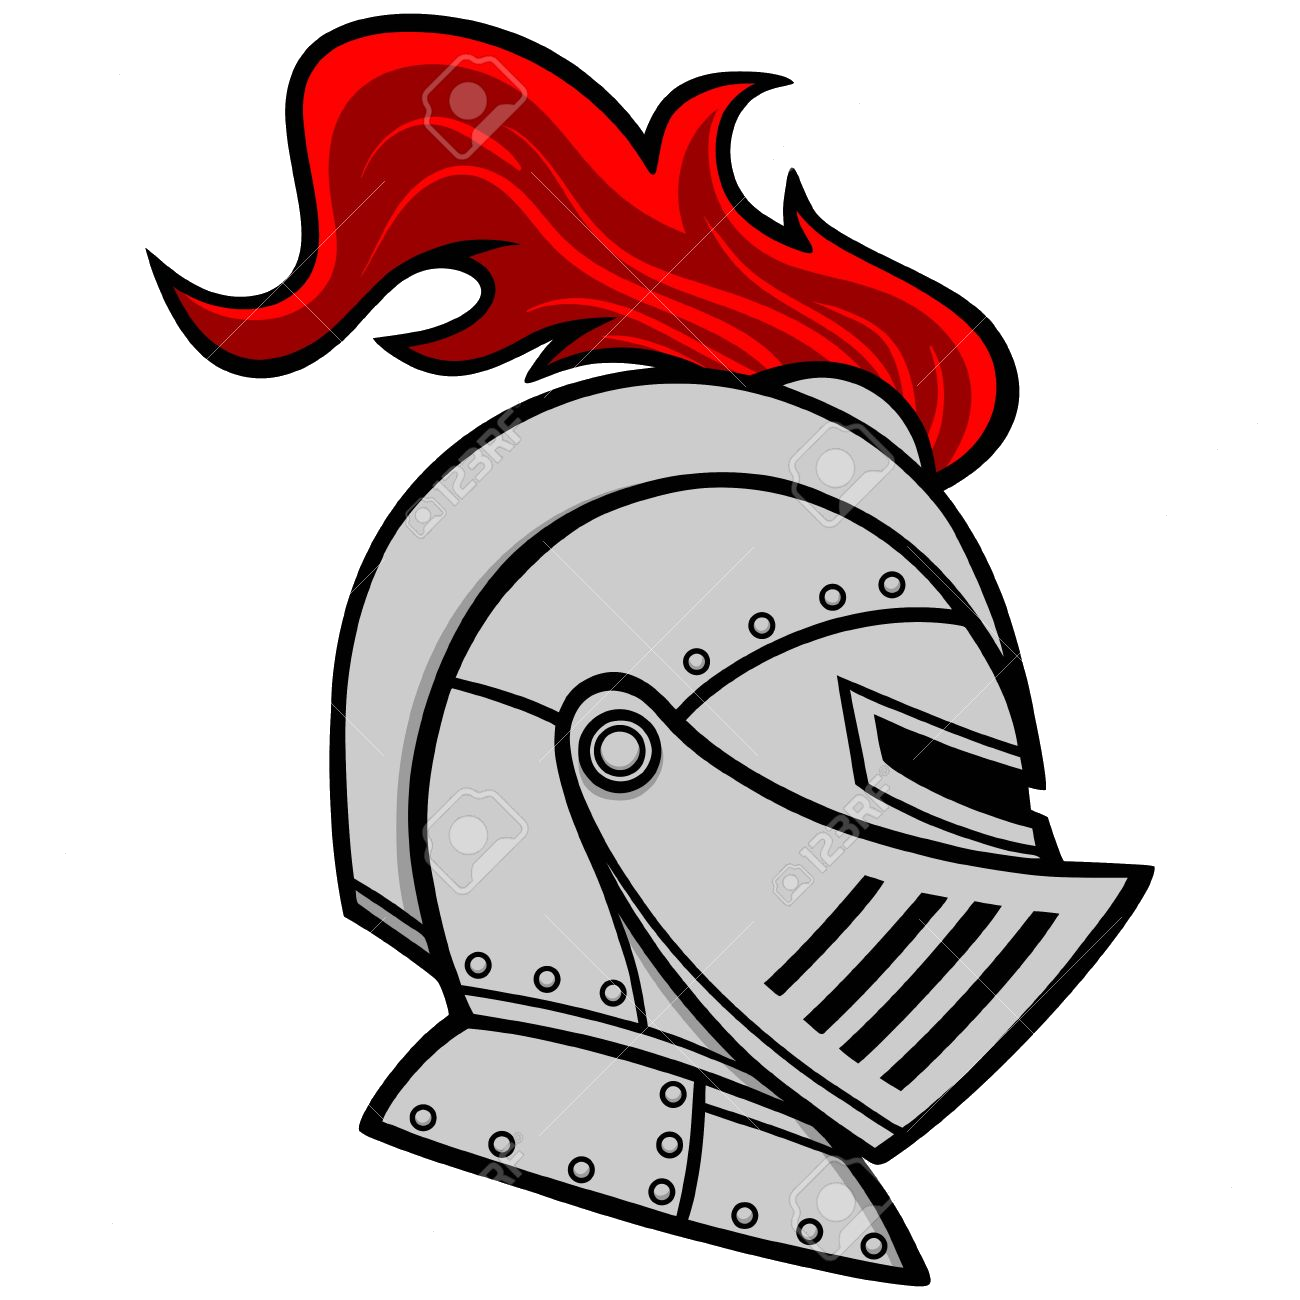 Stormtrooper X Collection Of Knight Helmet Clipart High Quality Free.